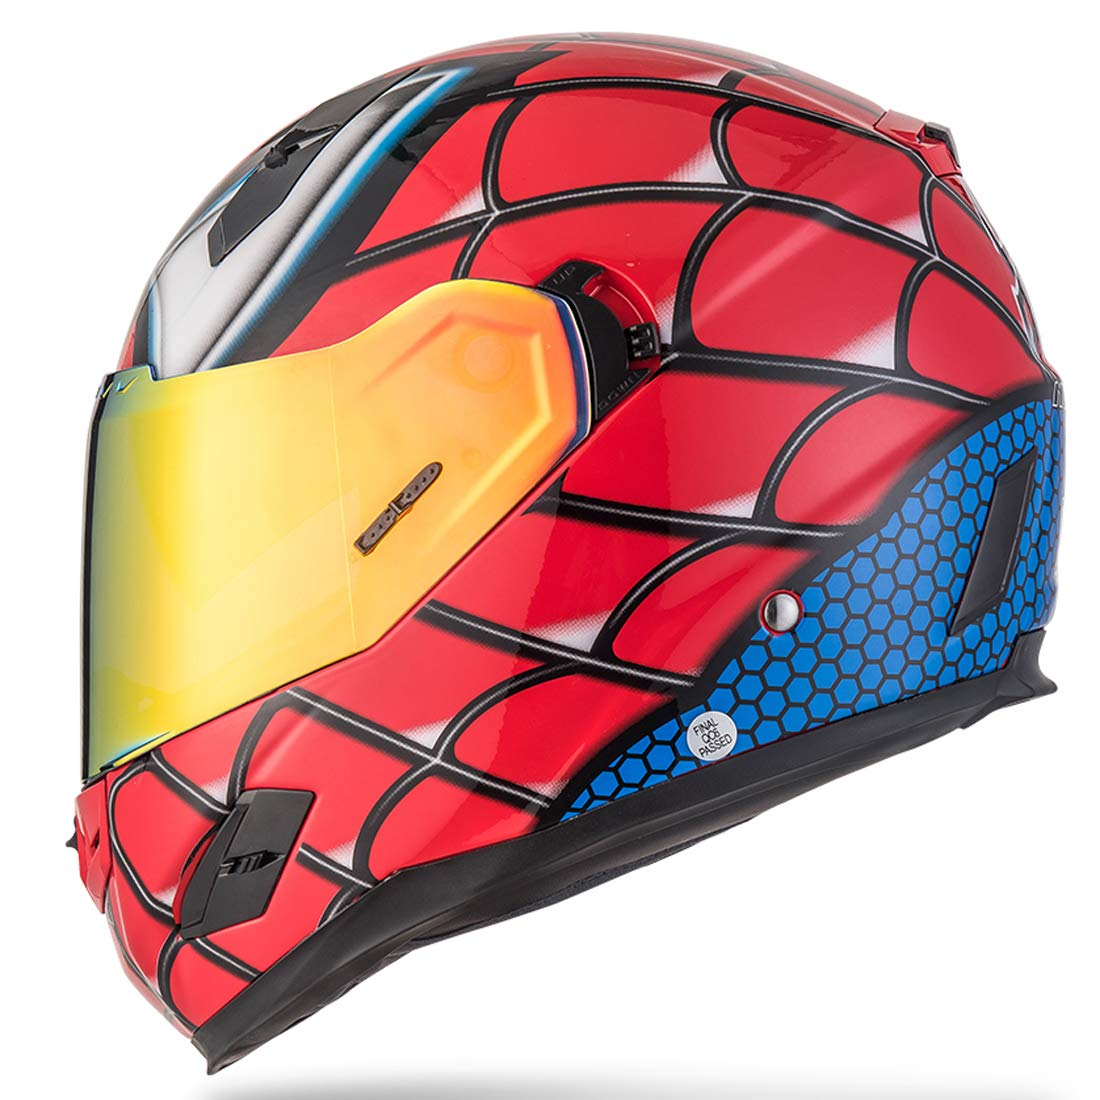 NENKI NK-856 Full Face Spiderman Motorcycle Helmet For Adult and Youth Street Bike with Iridium Red Visor and Sun Shield DOT Approved